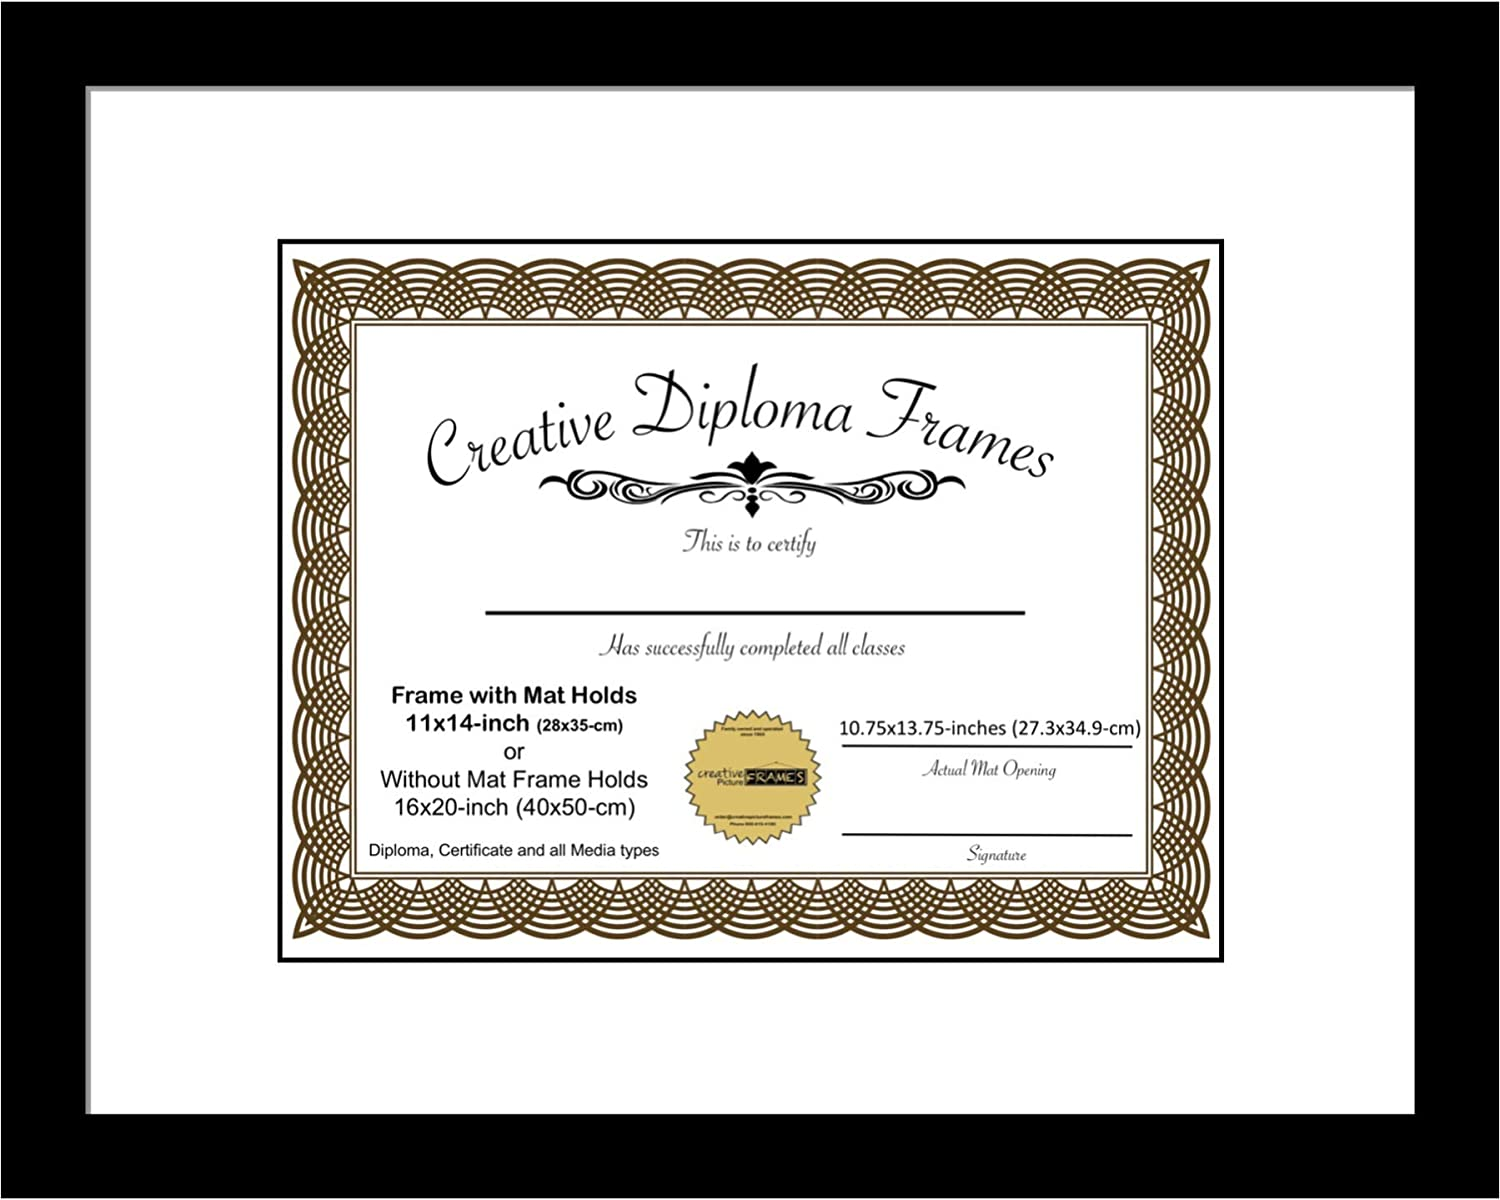 Creative Picture Frames 11x14 Classic Black Diploma Frame with White Mat Glass Easel and Installed Wall Hangers   Frame Holds 16x20 Media Without Mat